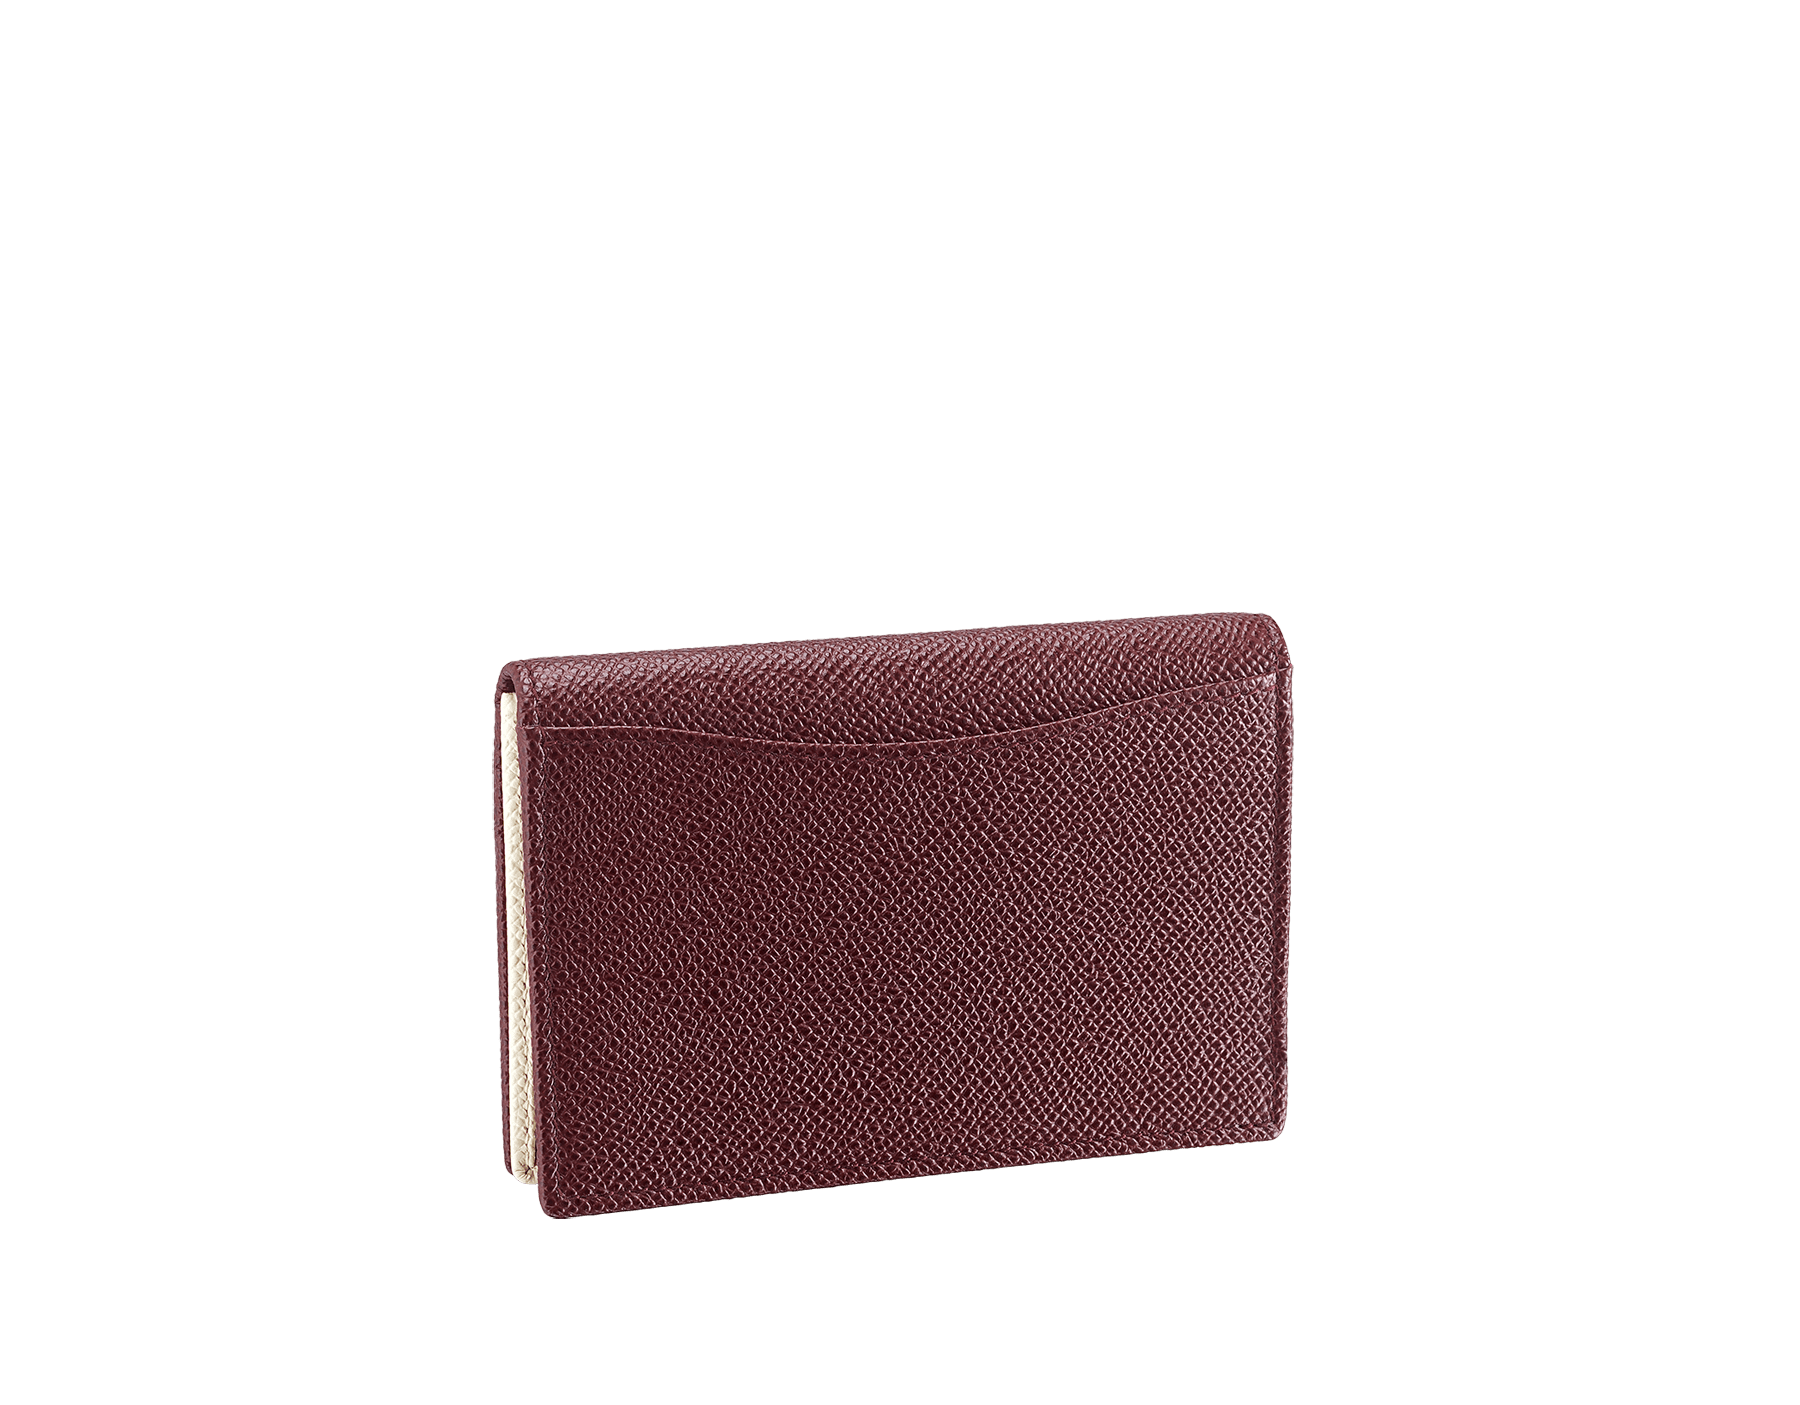 """""""BVLGARI BVLGARI"""" men's business card holder in Oxblood bordeaux and Ivory Opal white grain calf leather. Palladium-plated brass embellishment with logo. 291149 image 3"""